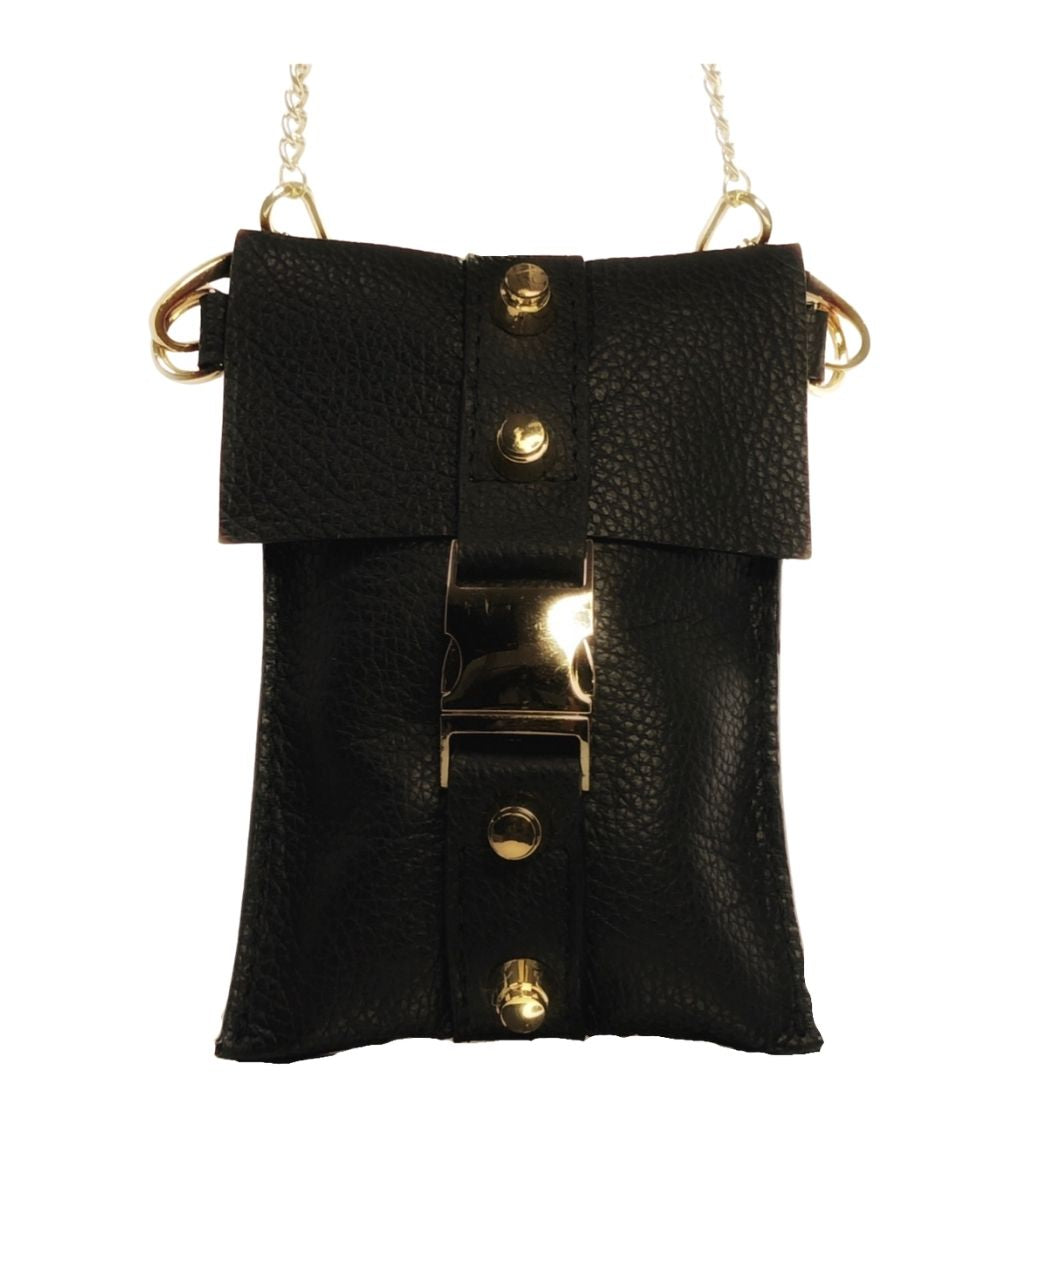 Black Leather Mini Bag - Shopidpearl